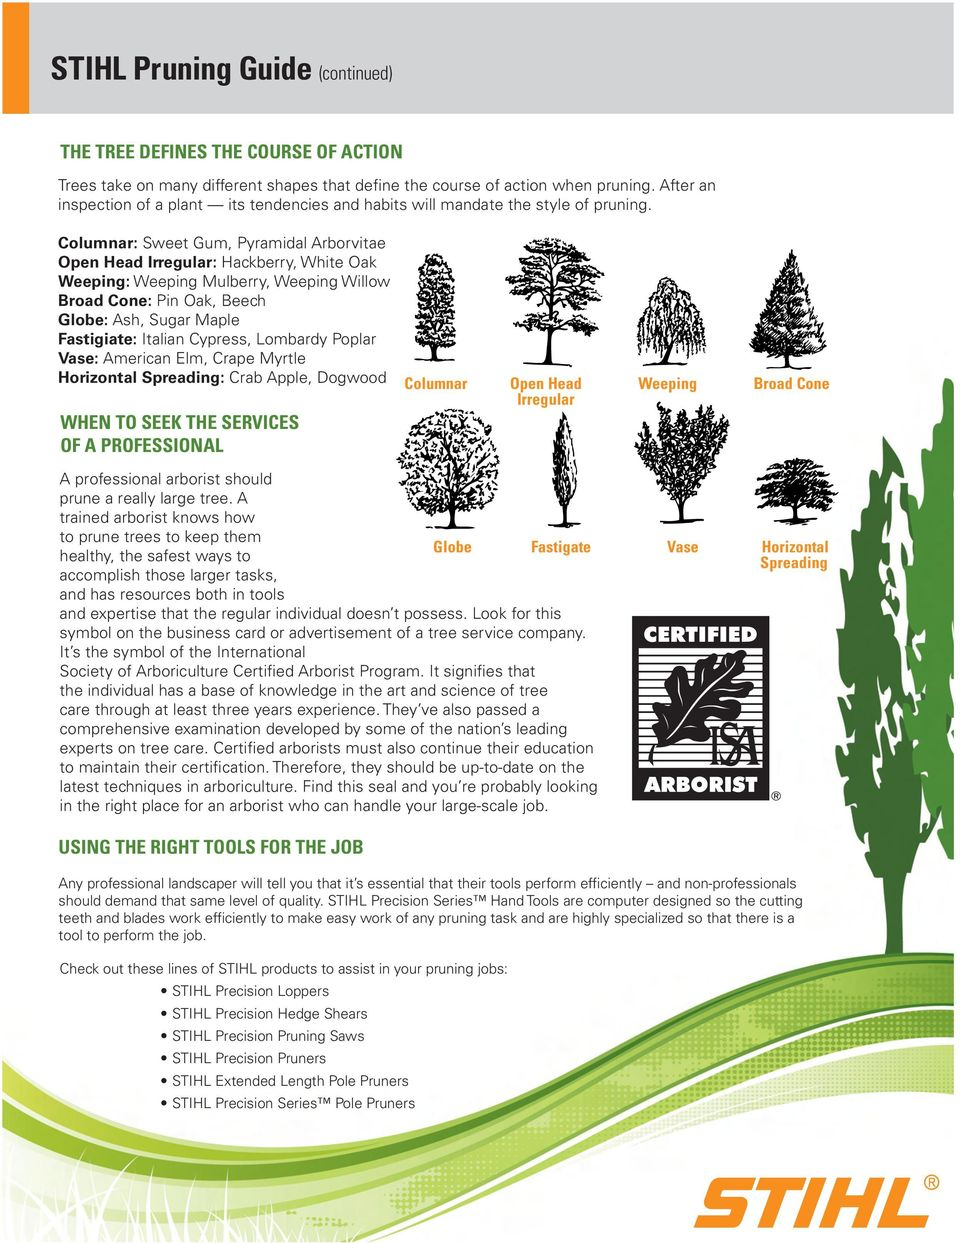 Columnar: Sweet Gum, Pyramidal Arborvitae Open Head Irregular: Hackberry, White Oak Weeping: Weeping Mulberry, Weeping Willow Broad Cone: Pin Oak, Beech Globe: Ash, Sugar Maple Fastigiate: Italian